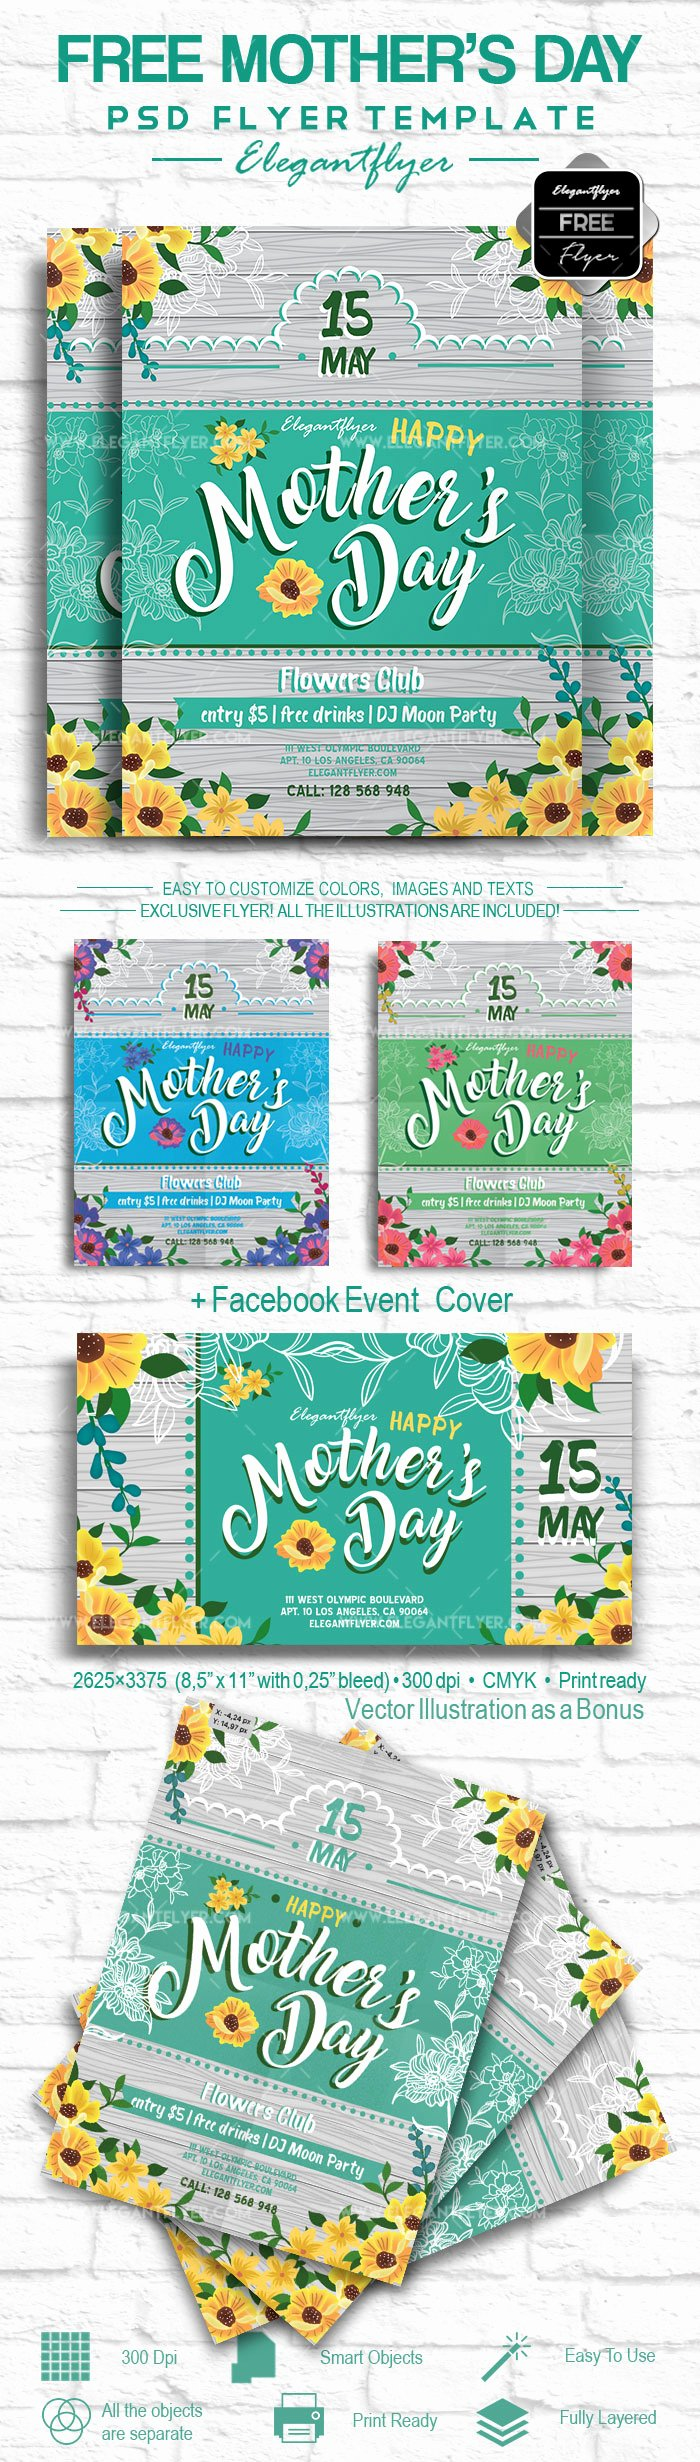 Mother Day Flyer Template Free Unique Mother's Day – Free Flyer Psd Template – by Elegantflyer